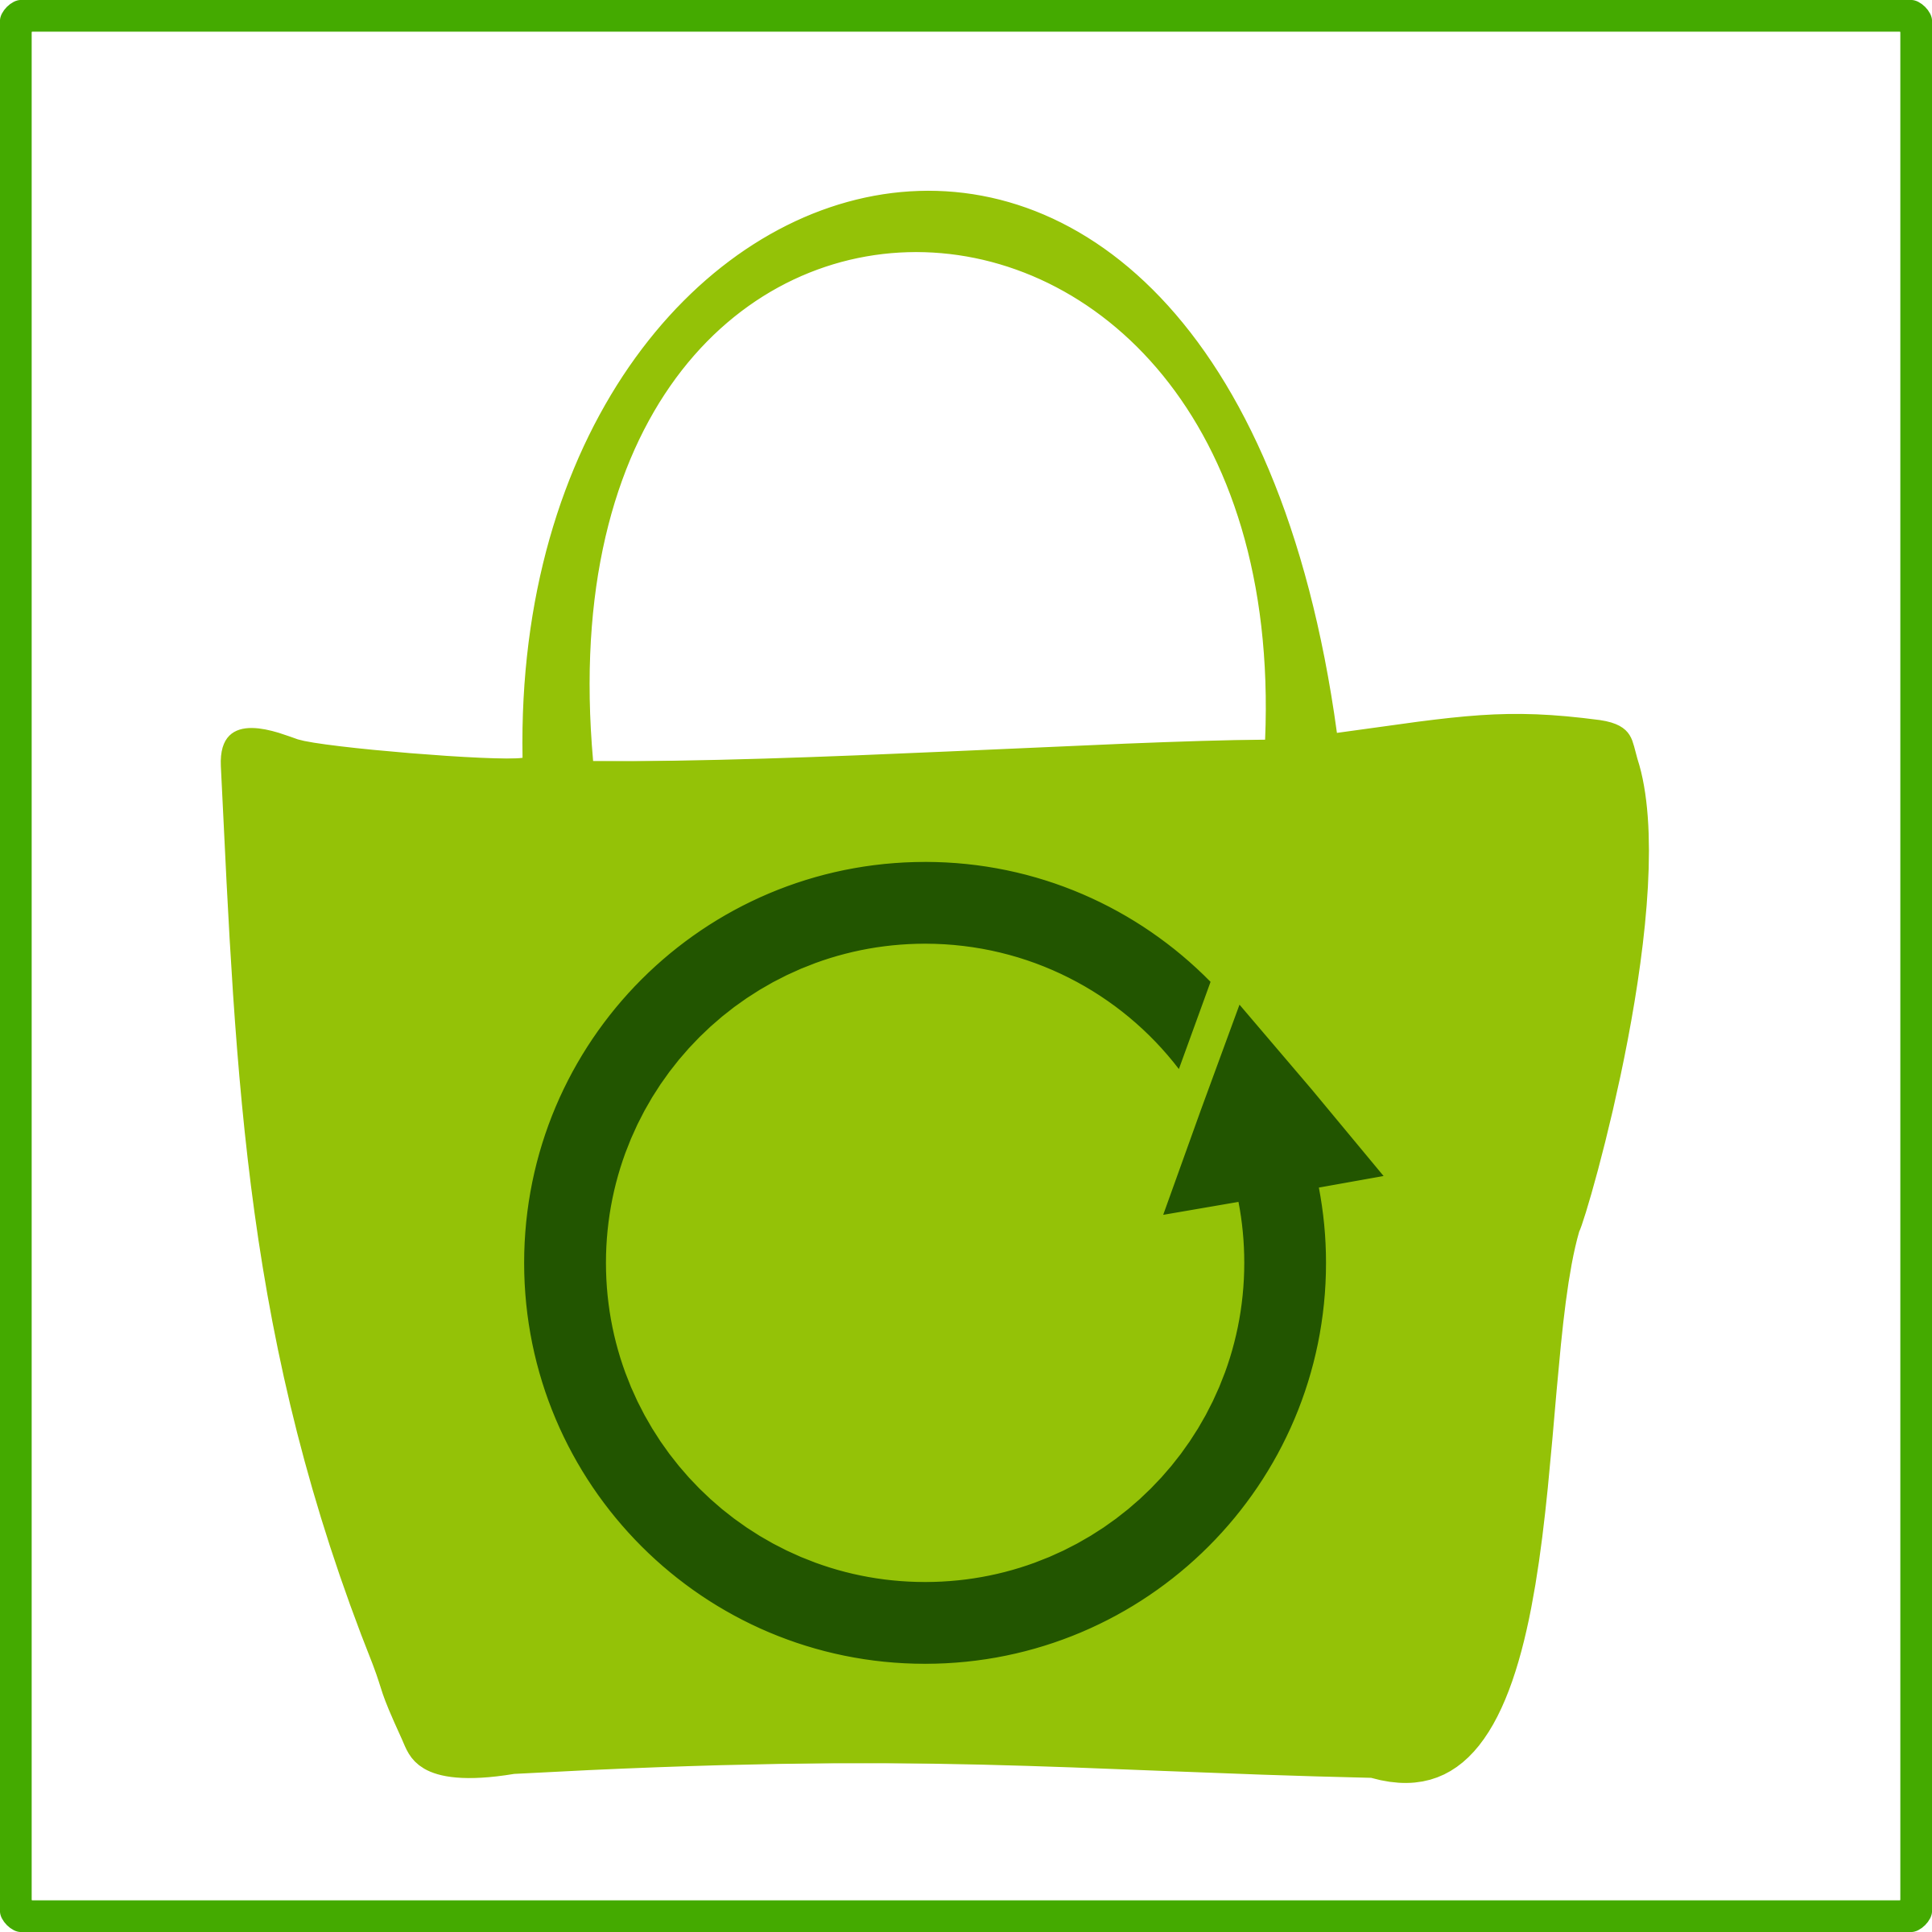 Eco green icon icons. Computer clipart shopping